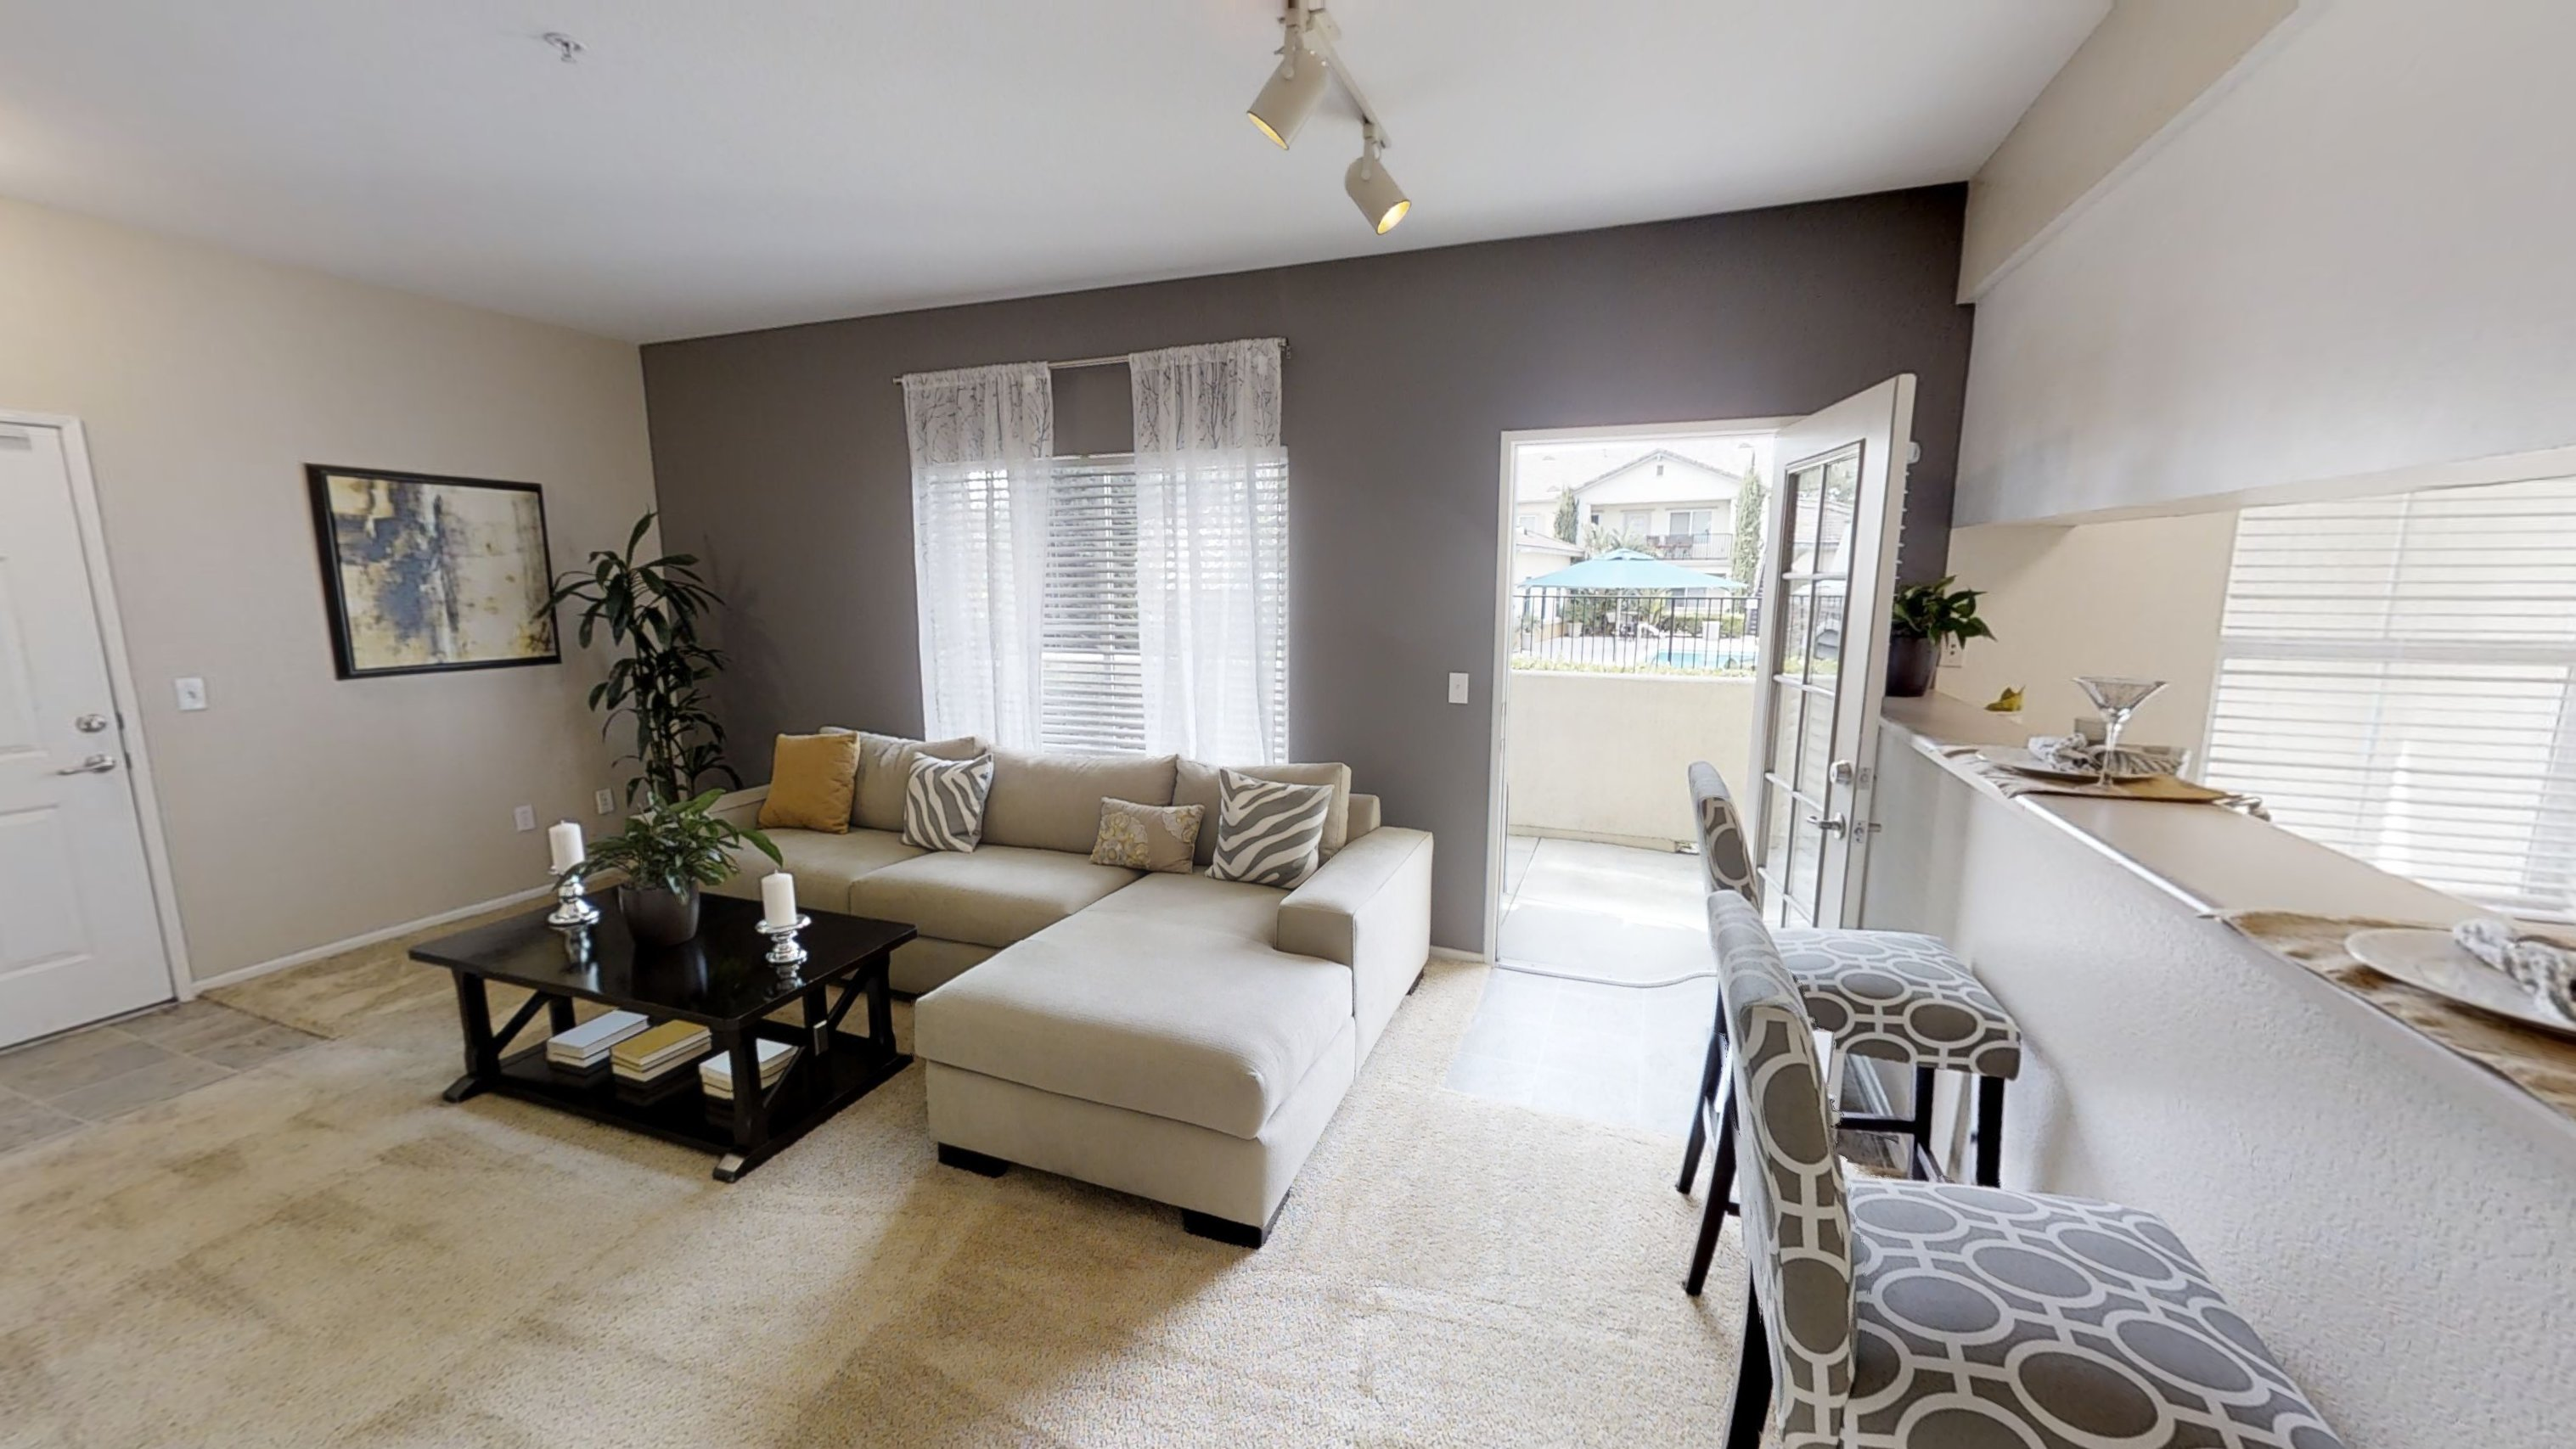 Del Mar Apartments Apartment Homes For Rent In Rancho Cucamonga